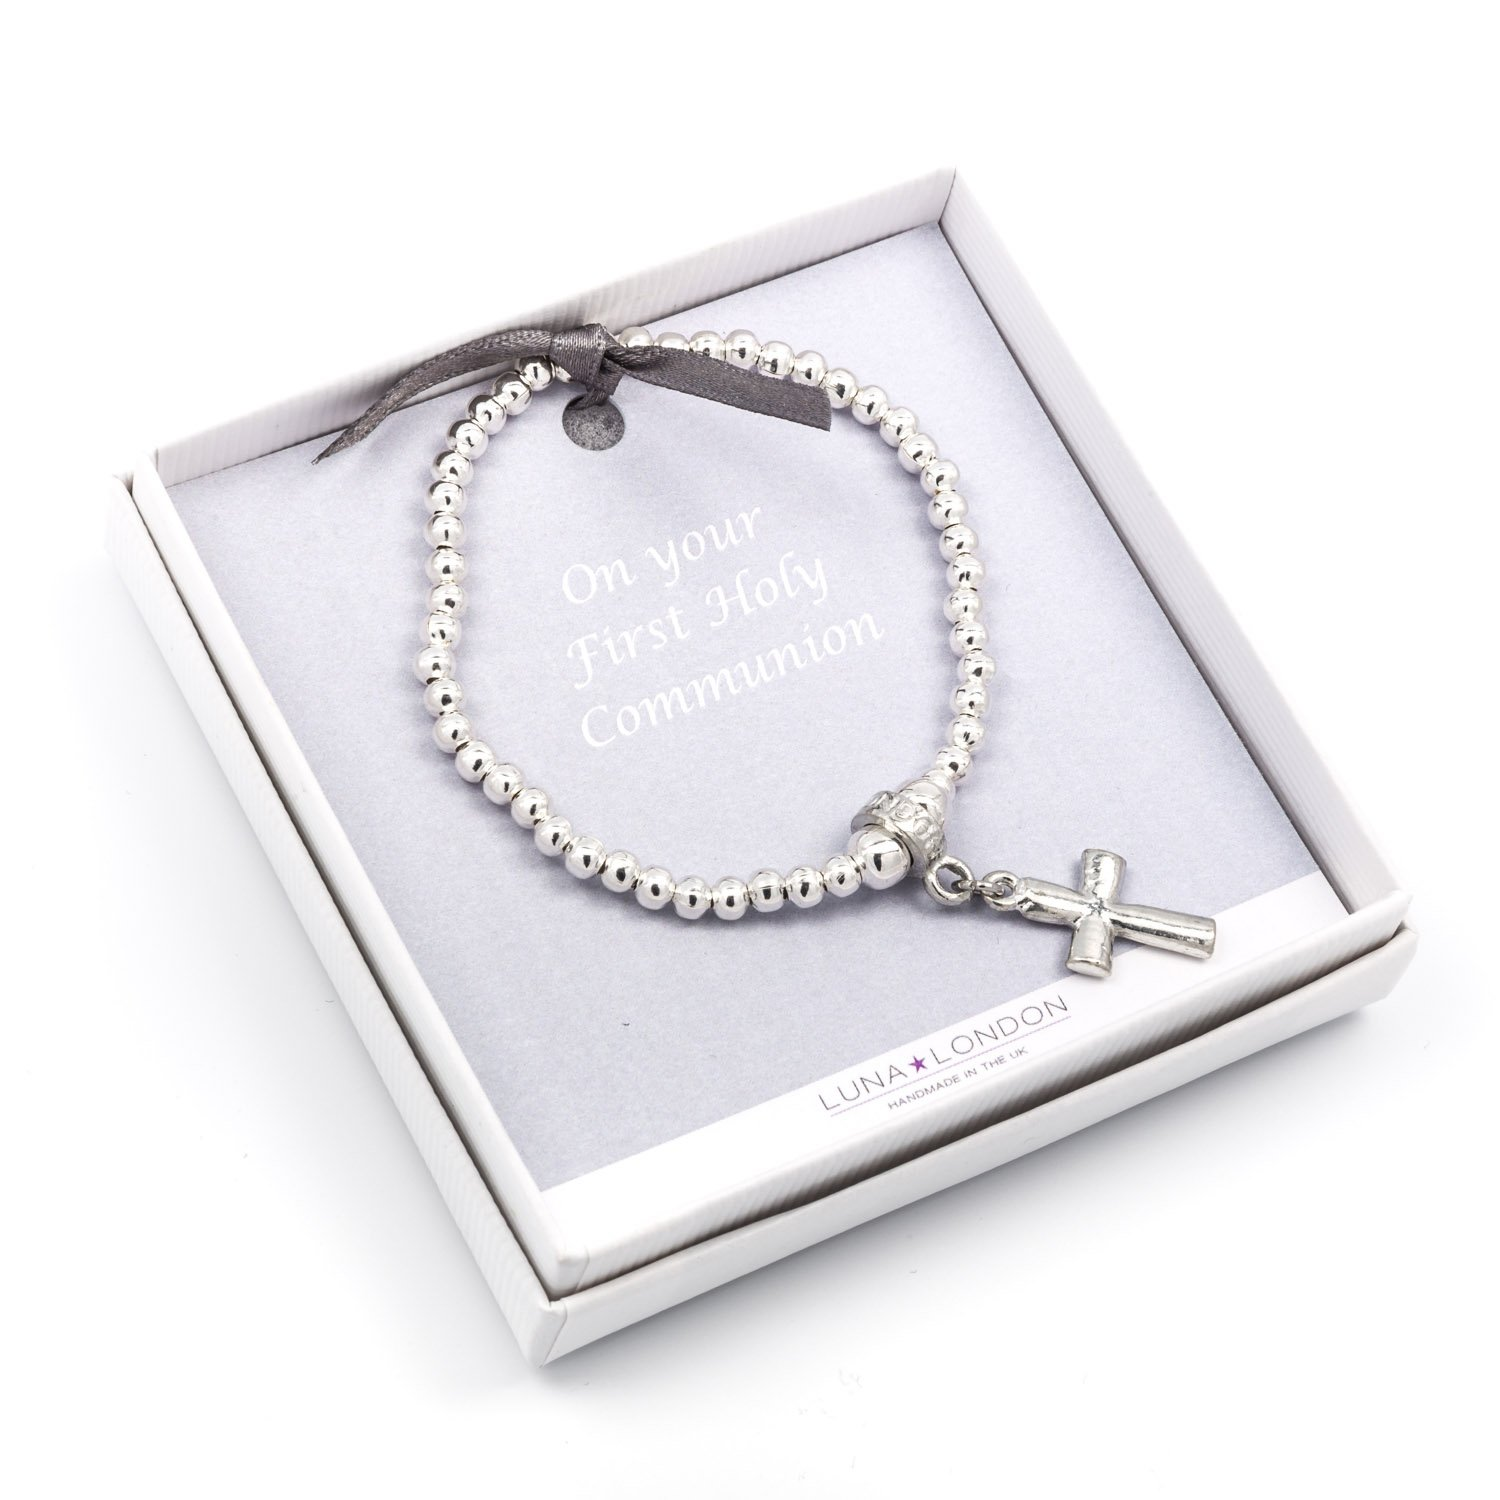 Metal Planet Ltd First Holy Communion silver plated bead bracelet, Childsize. Featuring a pewter cross design in smart…